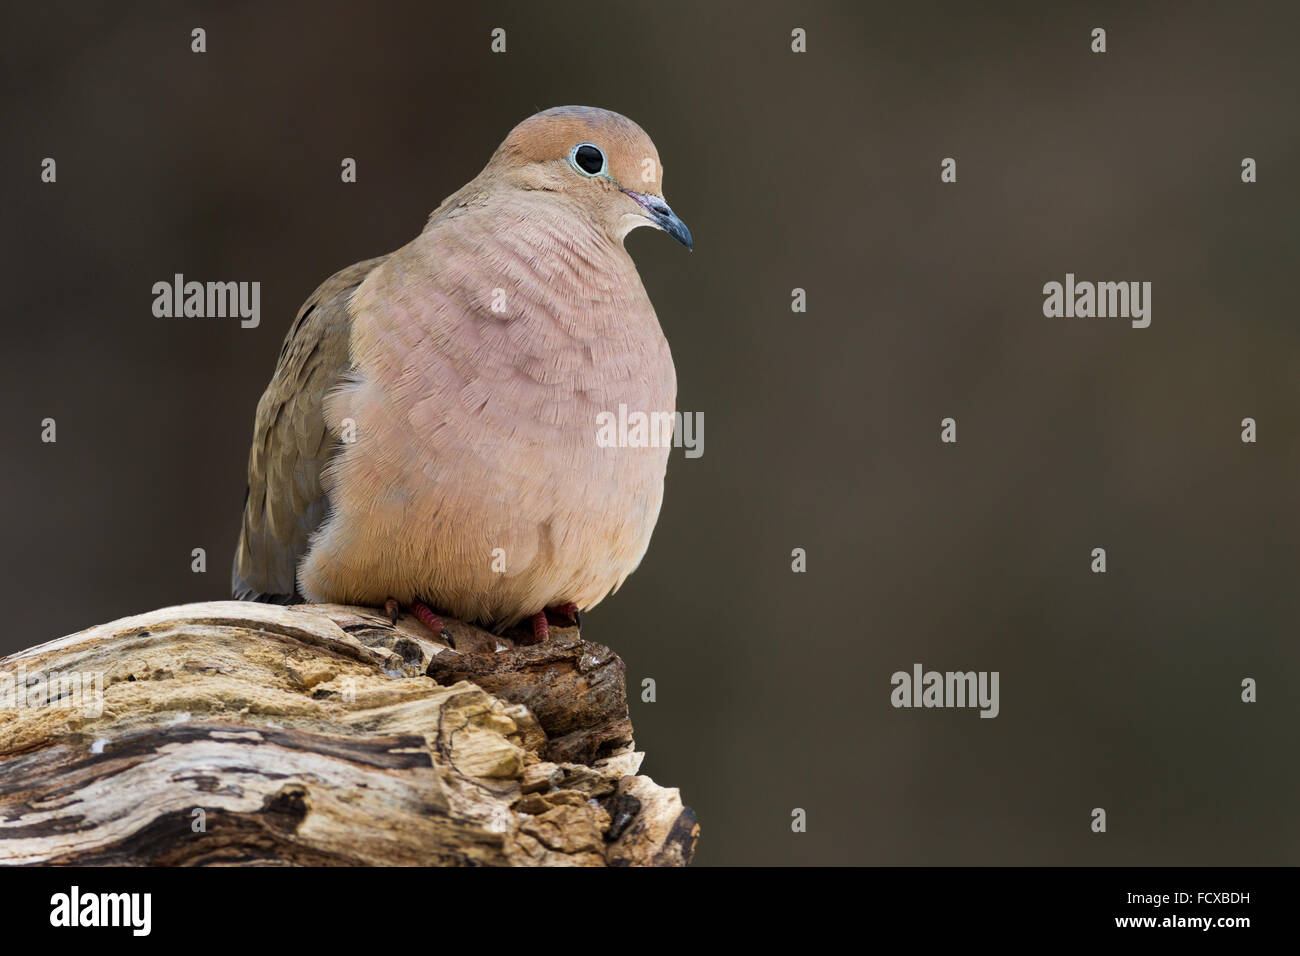 A mourning dove perched on a log - Stock Image